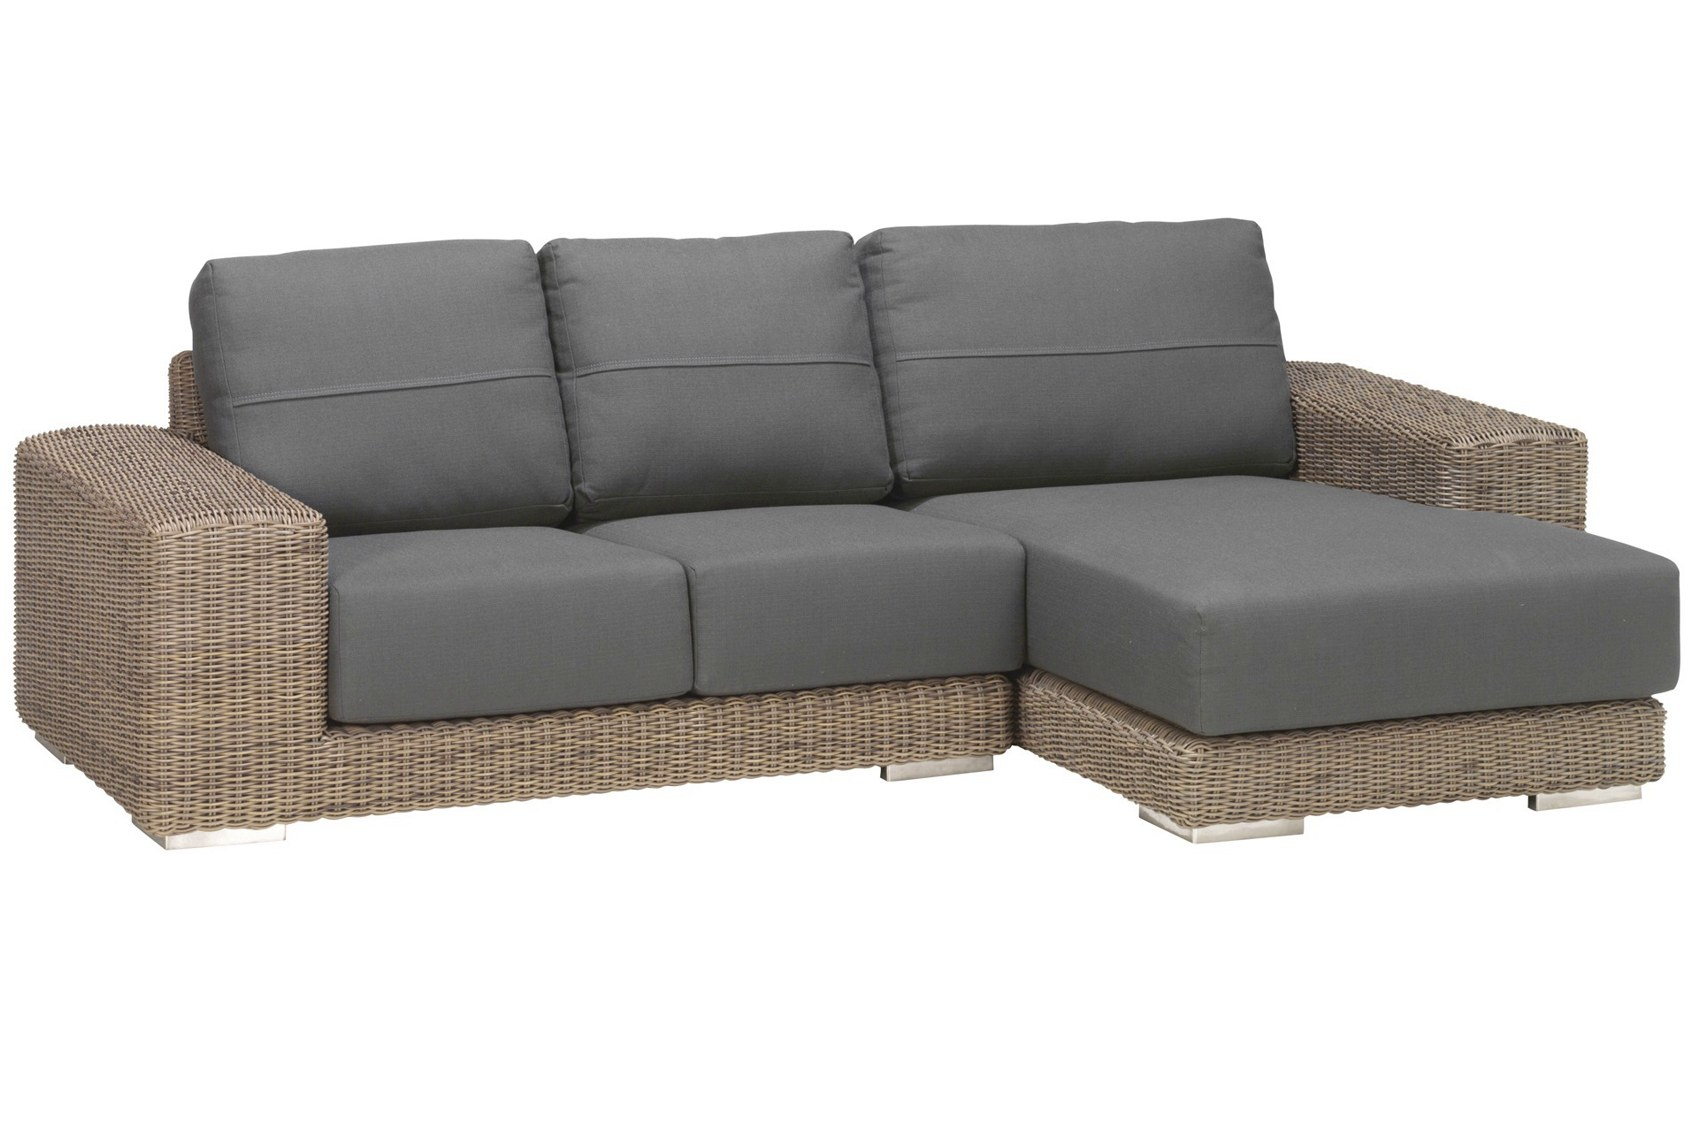 Chaise longue loungeset